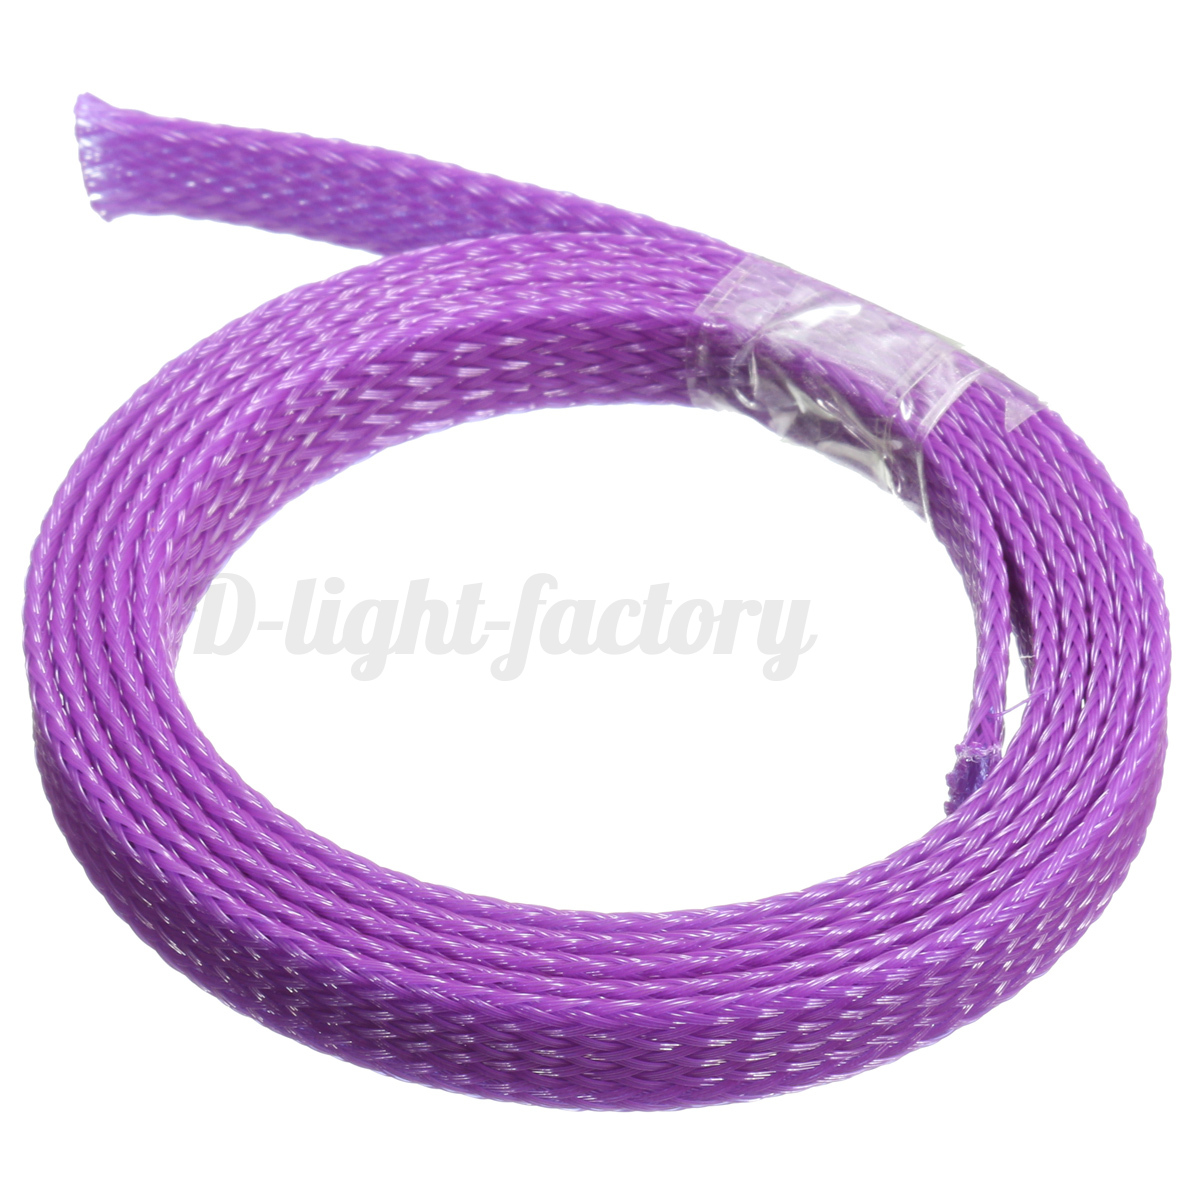 rtr 3 wire harness wire 1pcs 1m 8mm braided wire tidy mesh expandable sleeving ... wire harness mesh